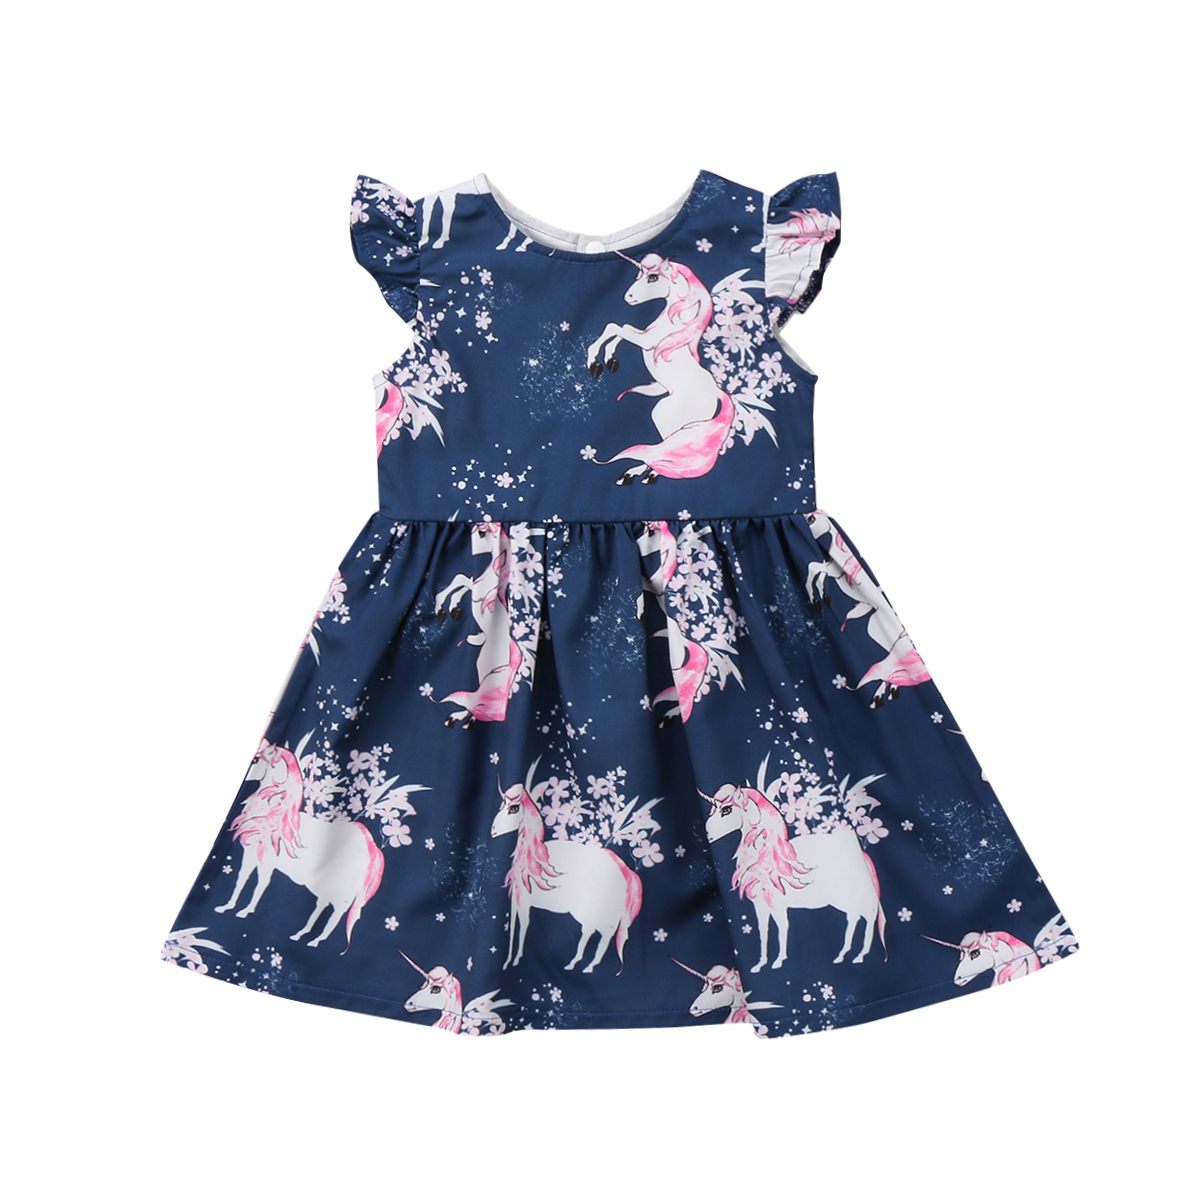 Newborn Emmababy 1-6T Chidren Baby Girl Dress Girls Kid Floral Unicorn Printed Casual Dresses Clothes Fashion 2018 New